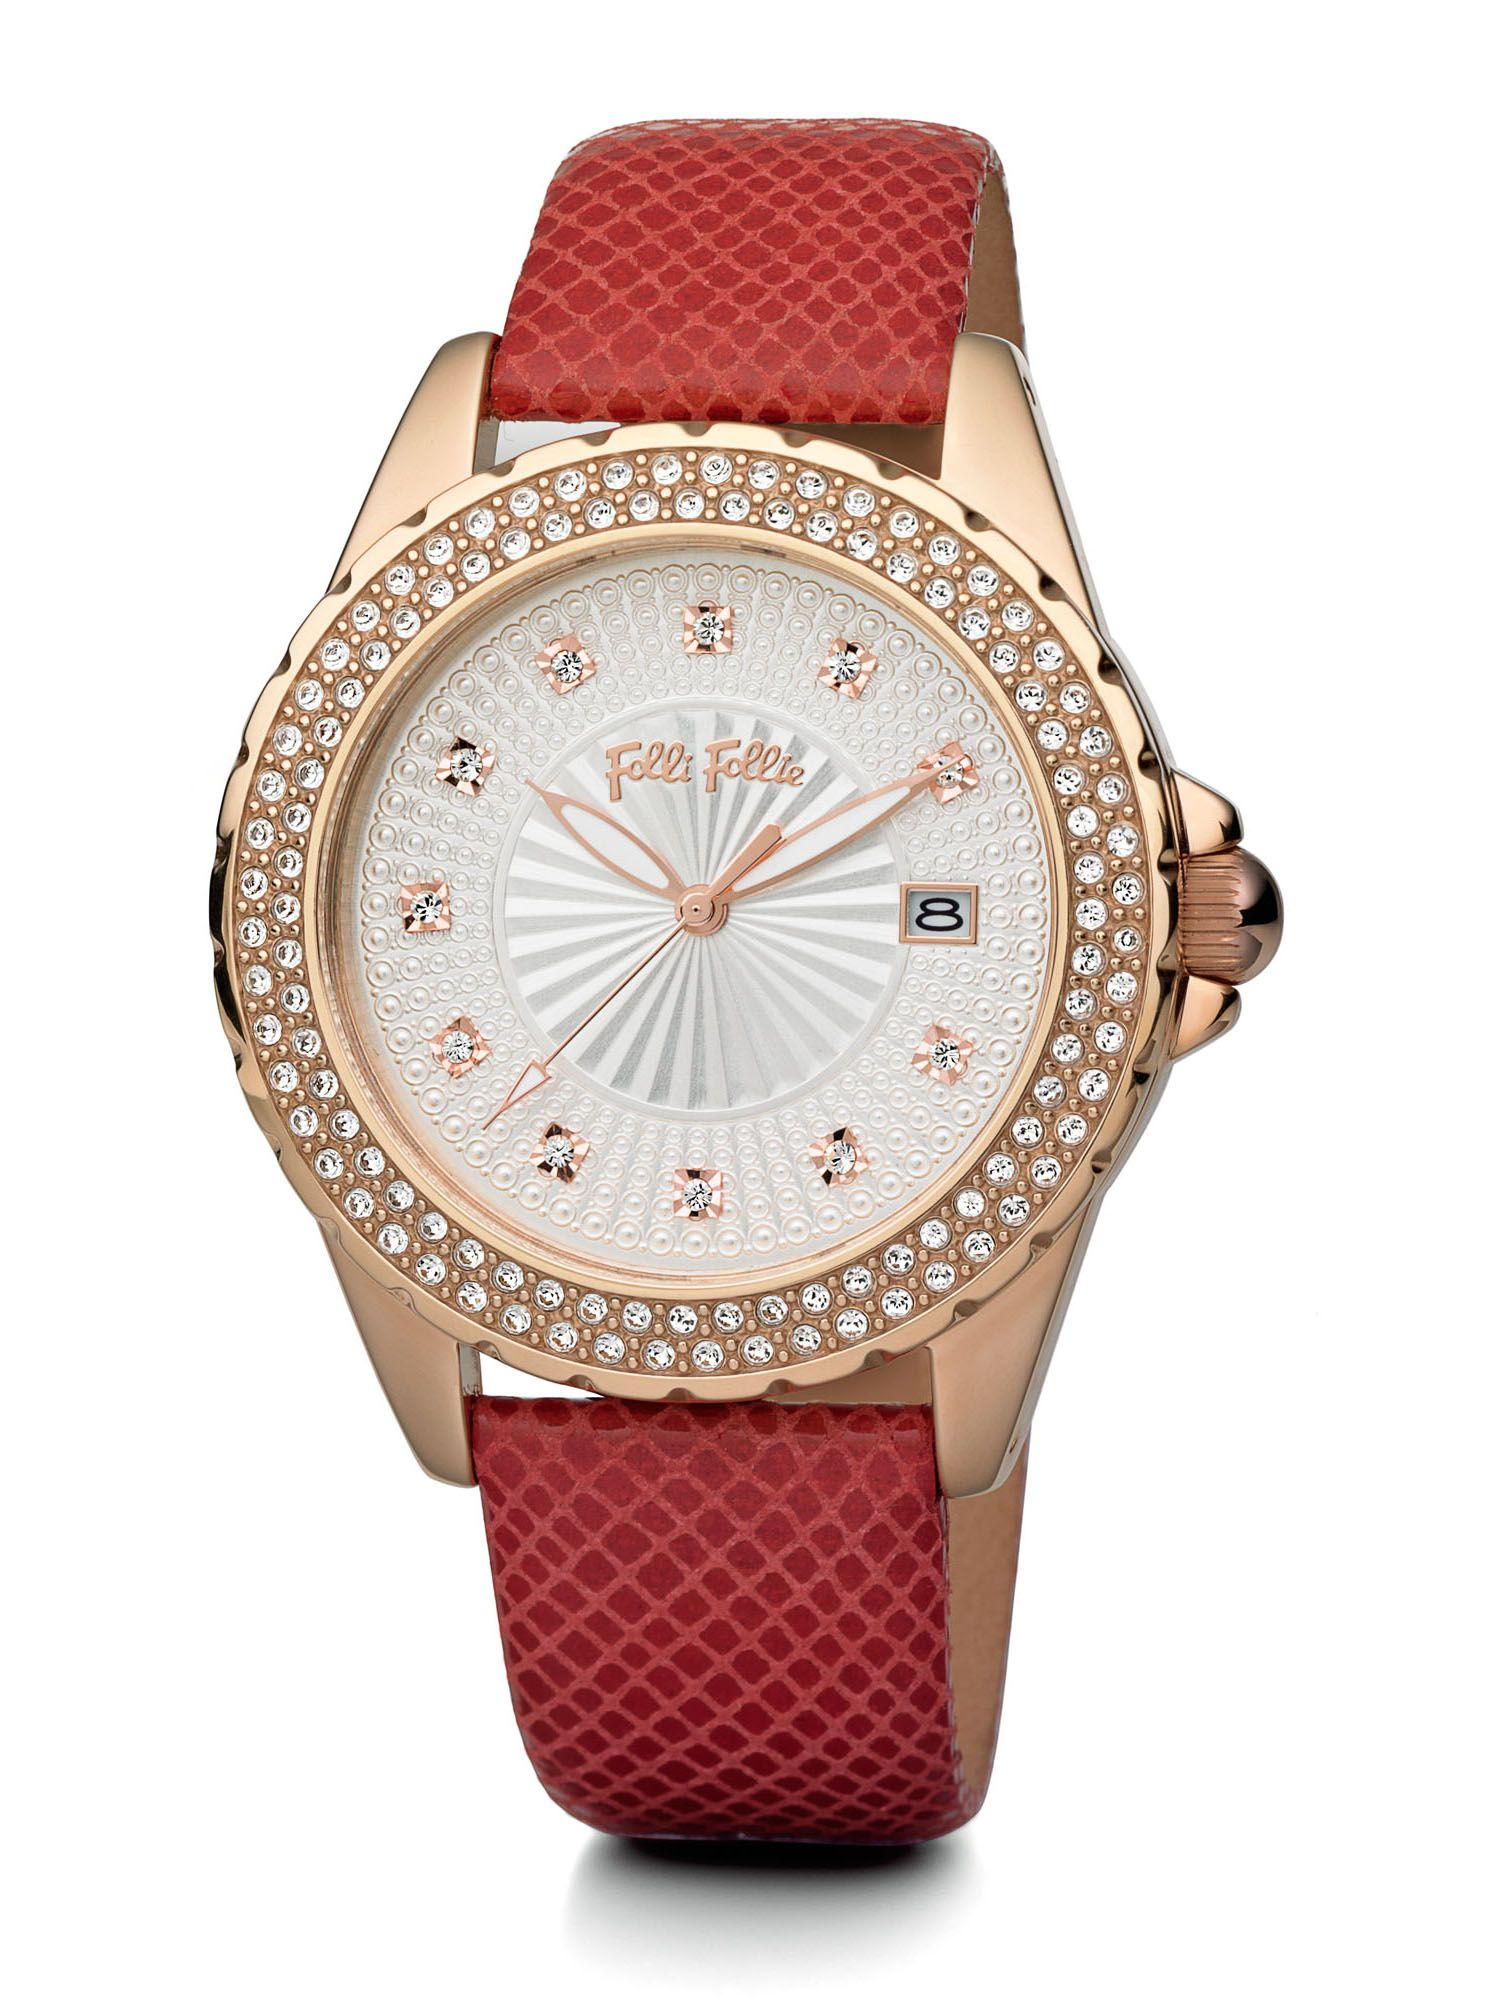 Folli Follie Day Dream watch, Red